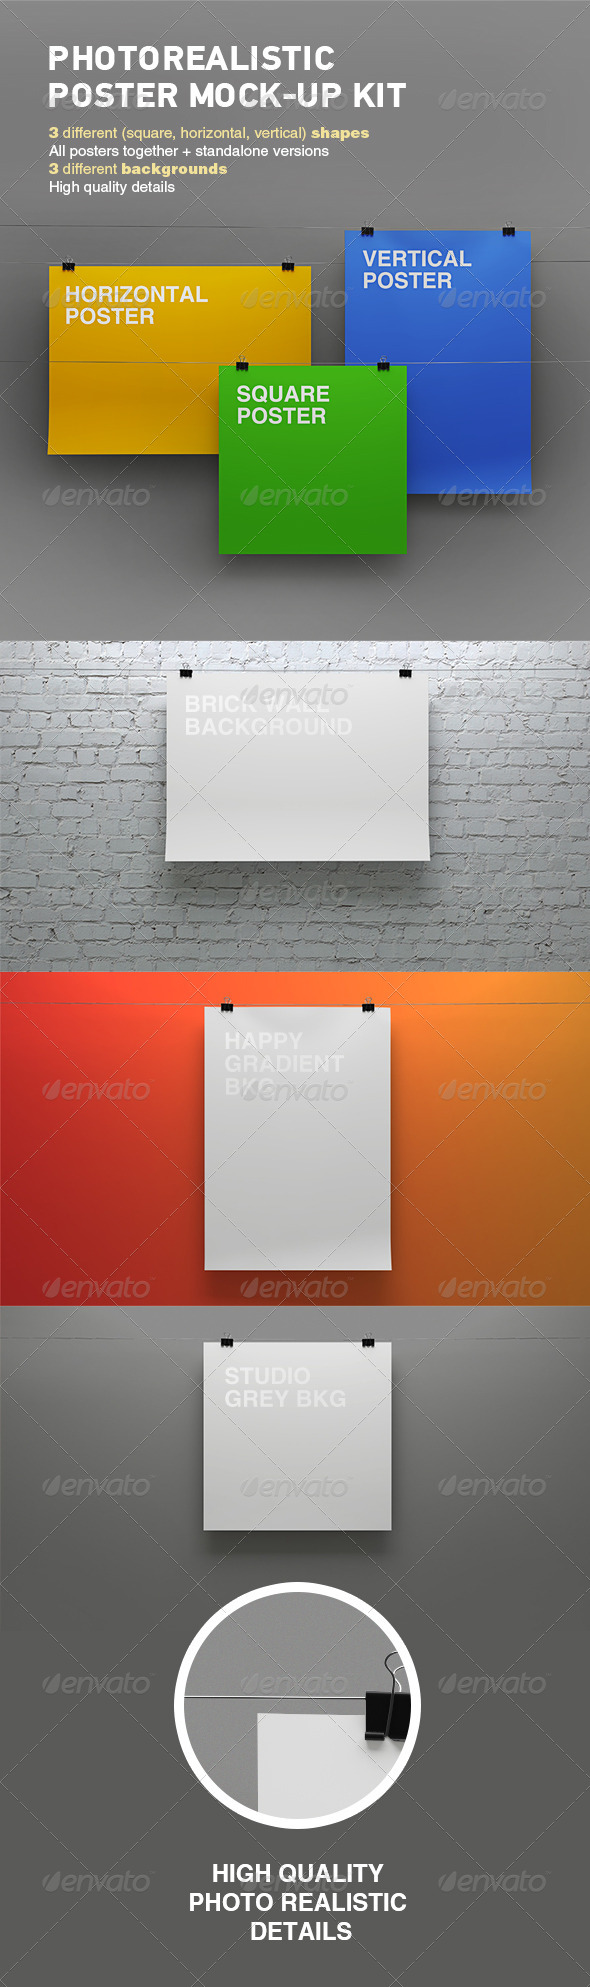 GraphicRiver Photorealistic Poster Mock-up Kit 7615069